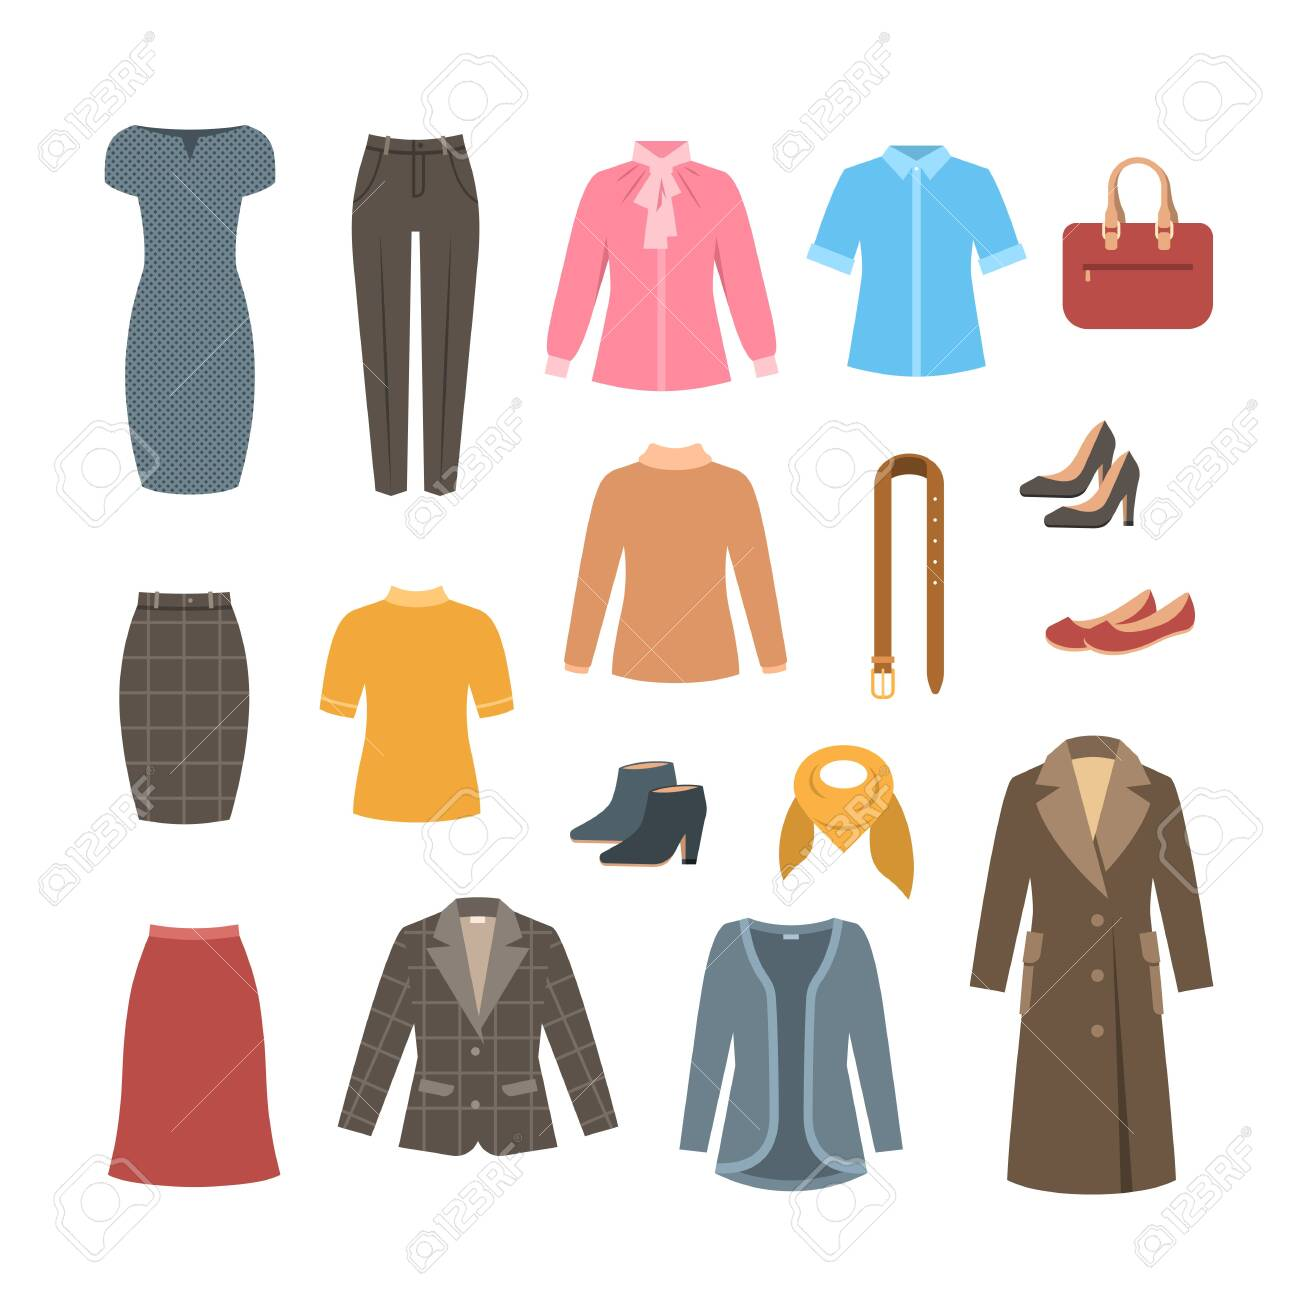 Business woman basic clothes and shoes set. Vector flat illustration. Office formal dress code outfit. Cartoon illustration. Icons of dress, skirt, jacket, coat, trousers, shirt, bag, boots. - 130638126